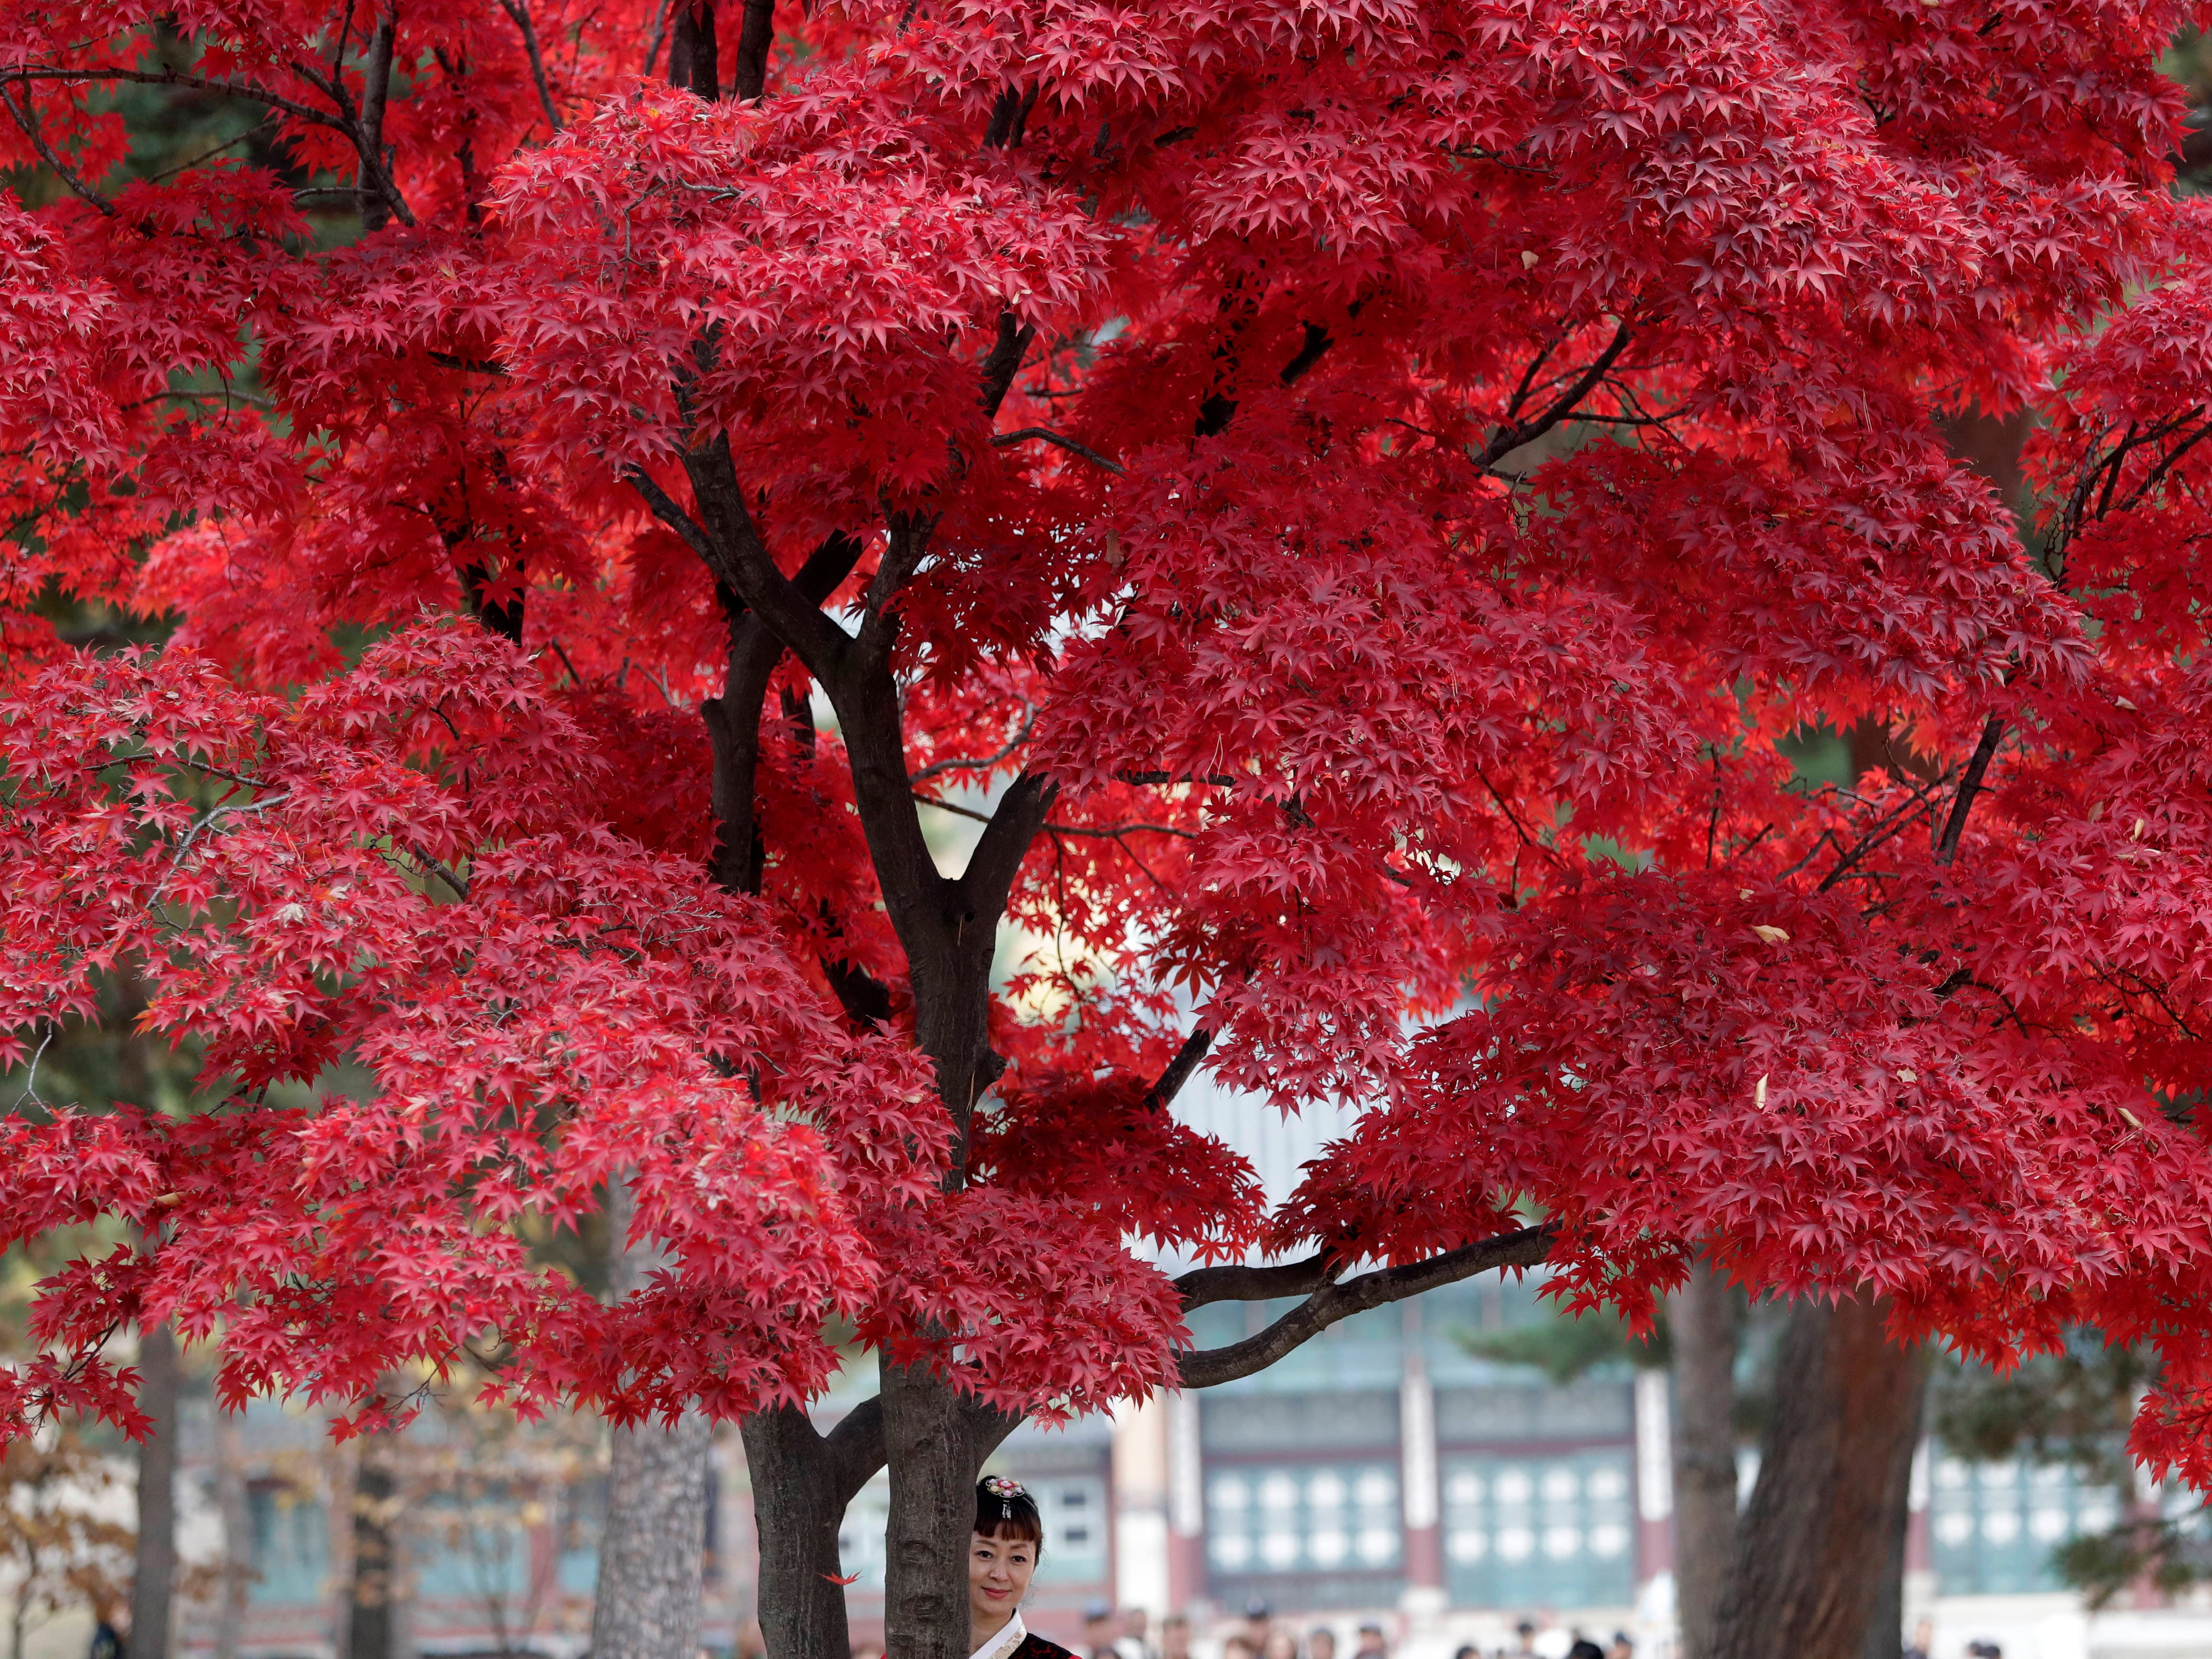 A woman stands for souvenir photo under leaves in autumn color at the Gyeongbok Palace, the main royal palace during the Joseon Dynasty, and one of South Korea's well known landmarks in Seoul, South Korea, Wednesday, Nov. 7, 2018.